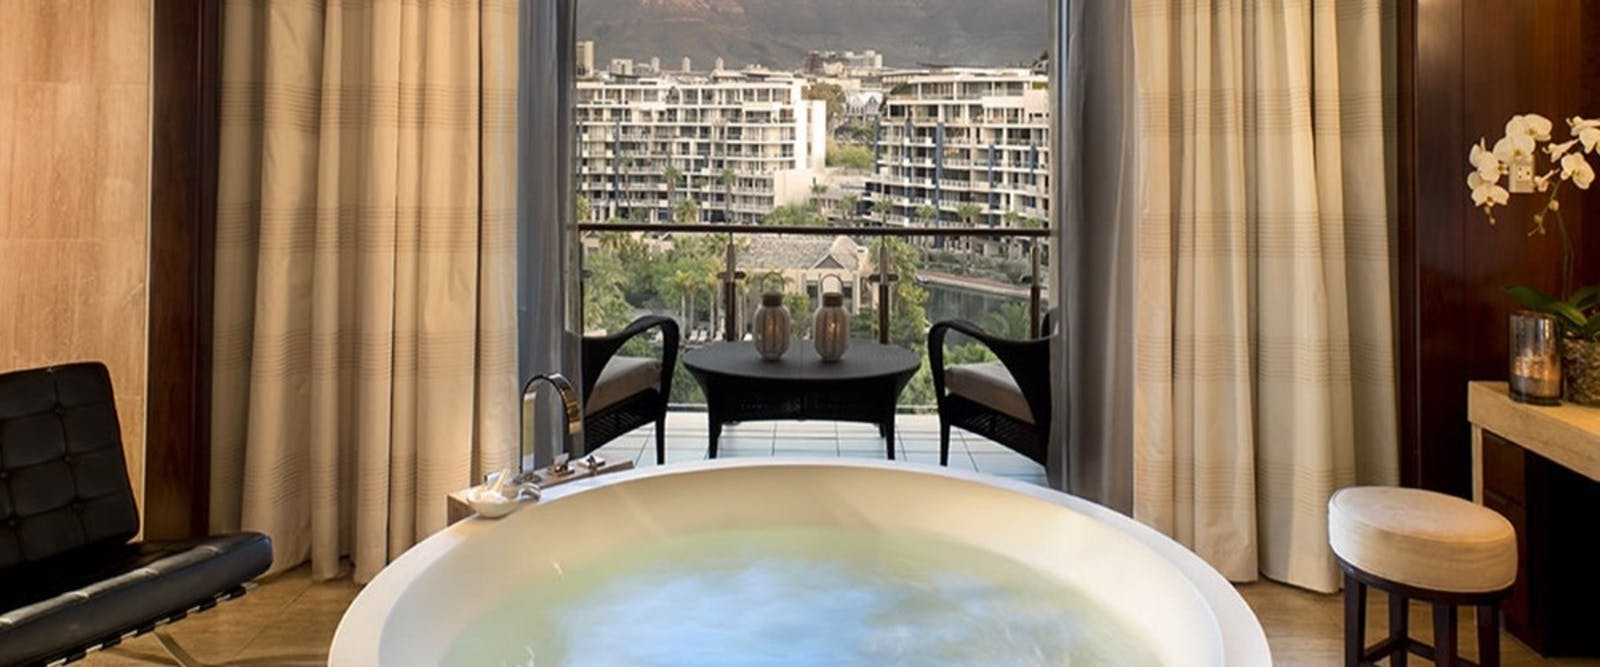 Table Mountain Suite Bathroom at One & Only Cape Town, South Africa